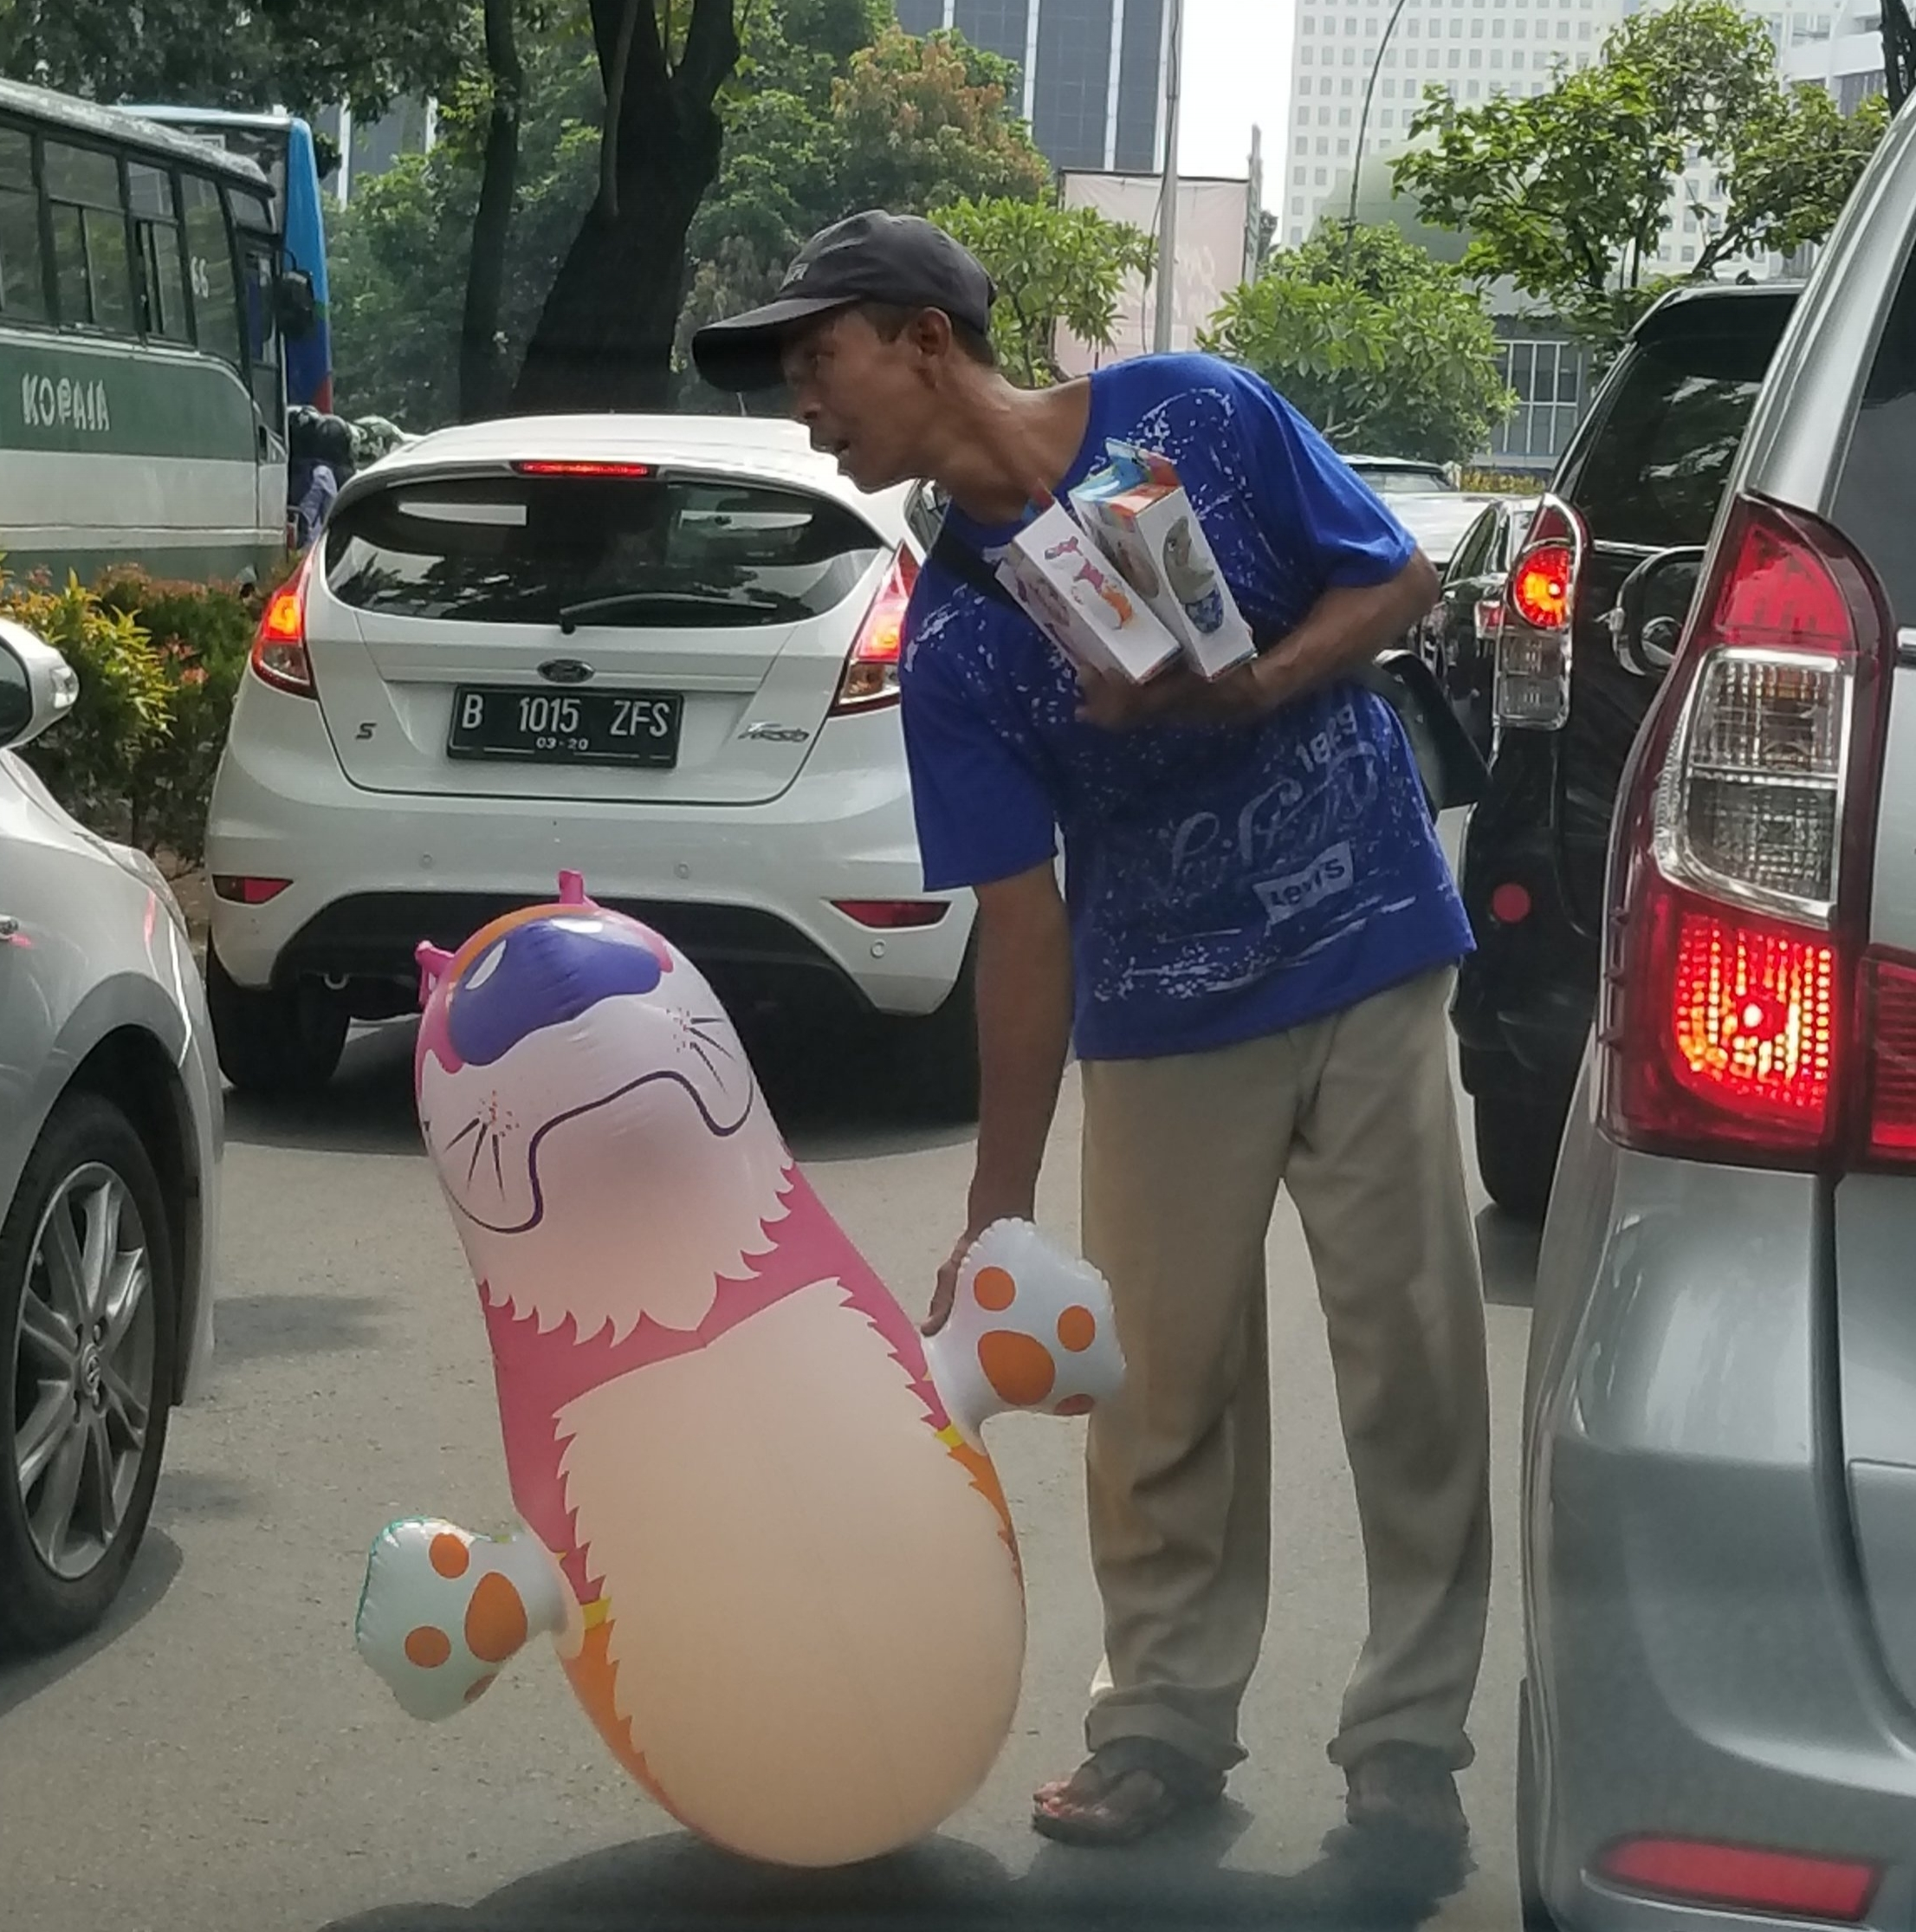 You just never know what they will try and sell you in the middle of the street in Jakarta ....